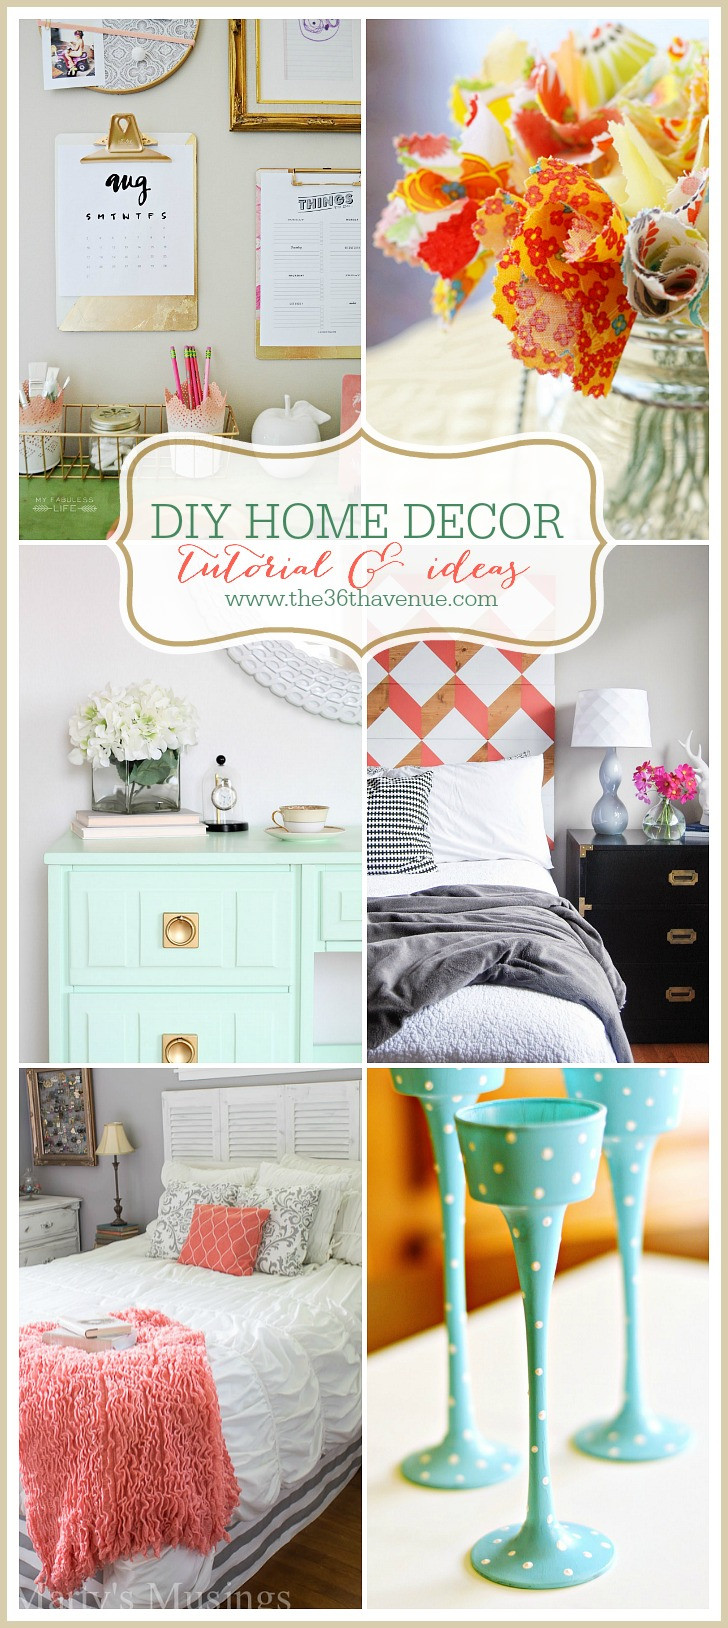 Best ideas about DIY Home Decor Crafts . Save or Pin The 36th AVENUE Home Decor DIY Projects Now.